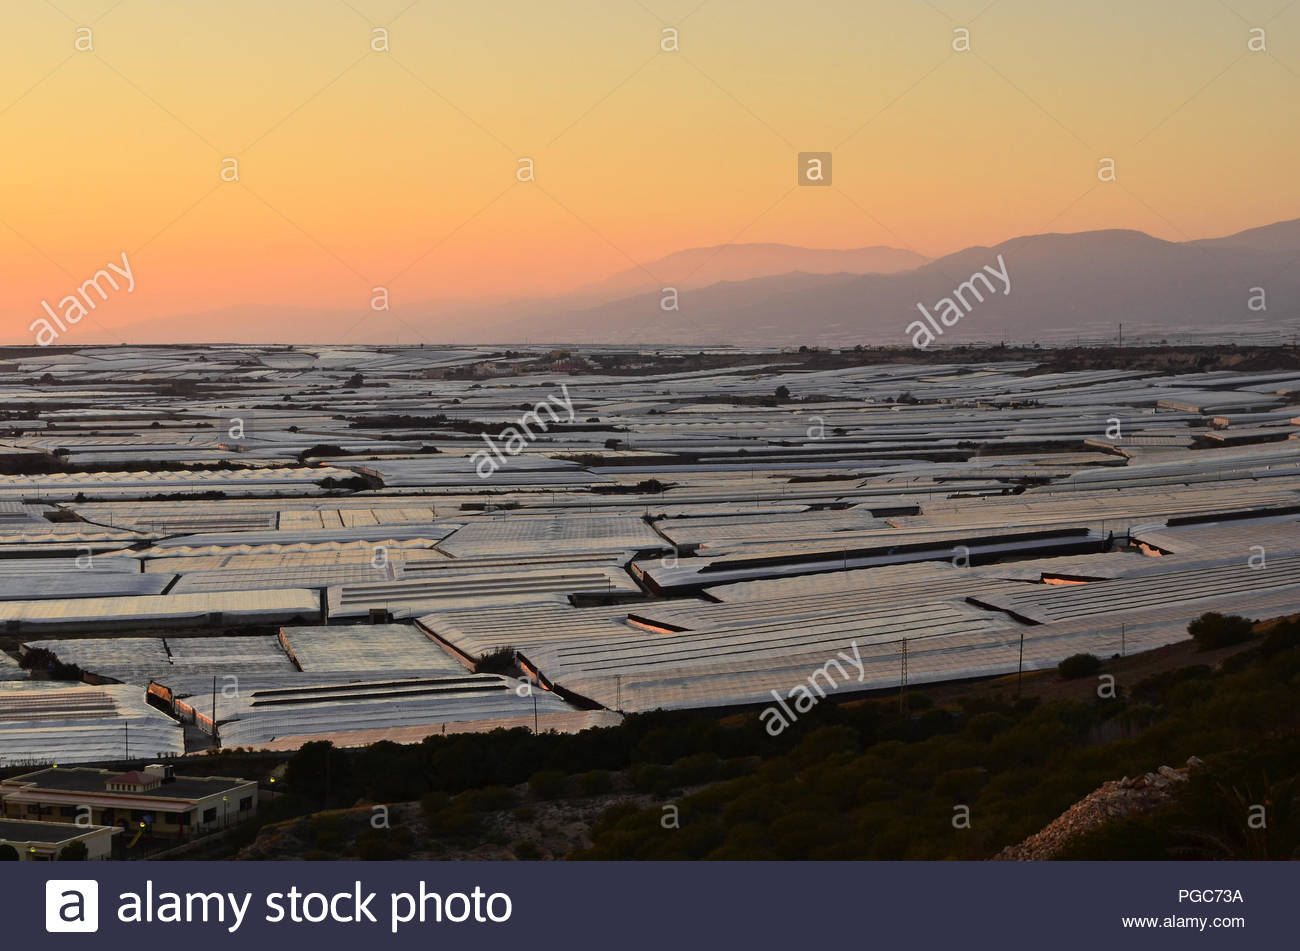 Plastic landscape, field of greenhouses glittering in evening light. Almerimar province of Almeria Southern Spain Europe. - Stock Image